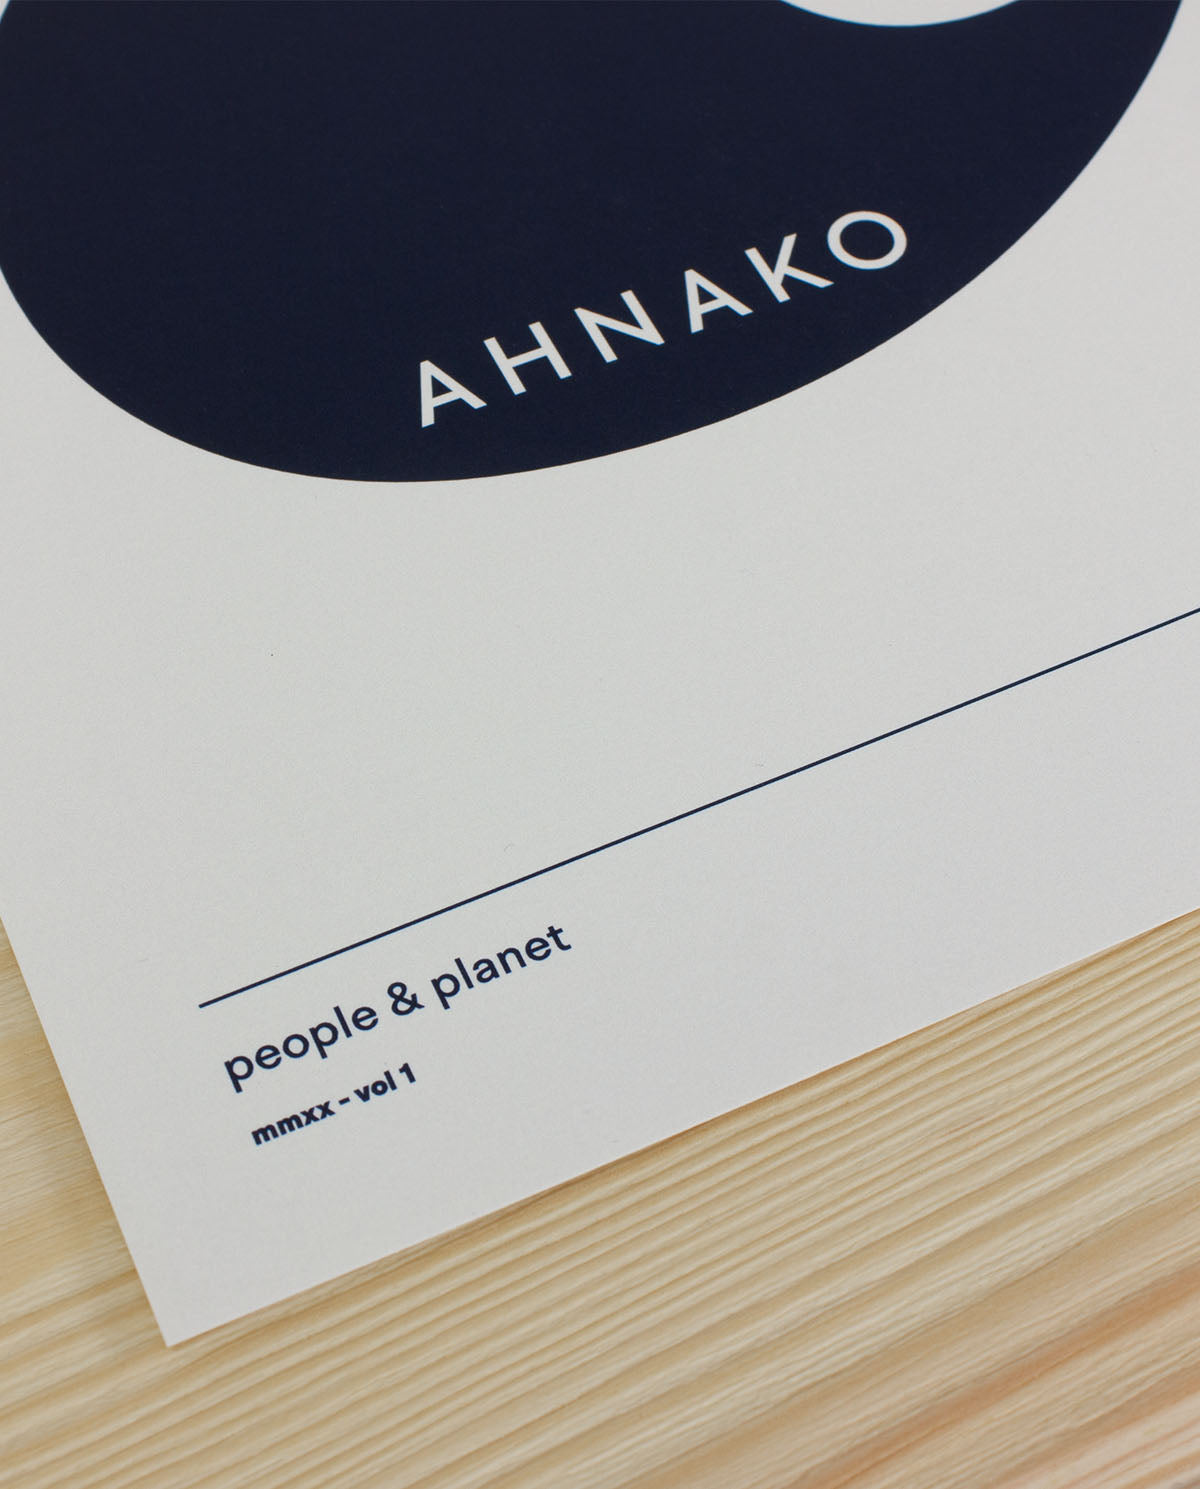 Ahnako lowercase a poster close up